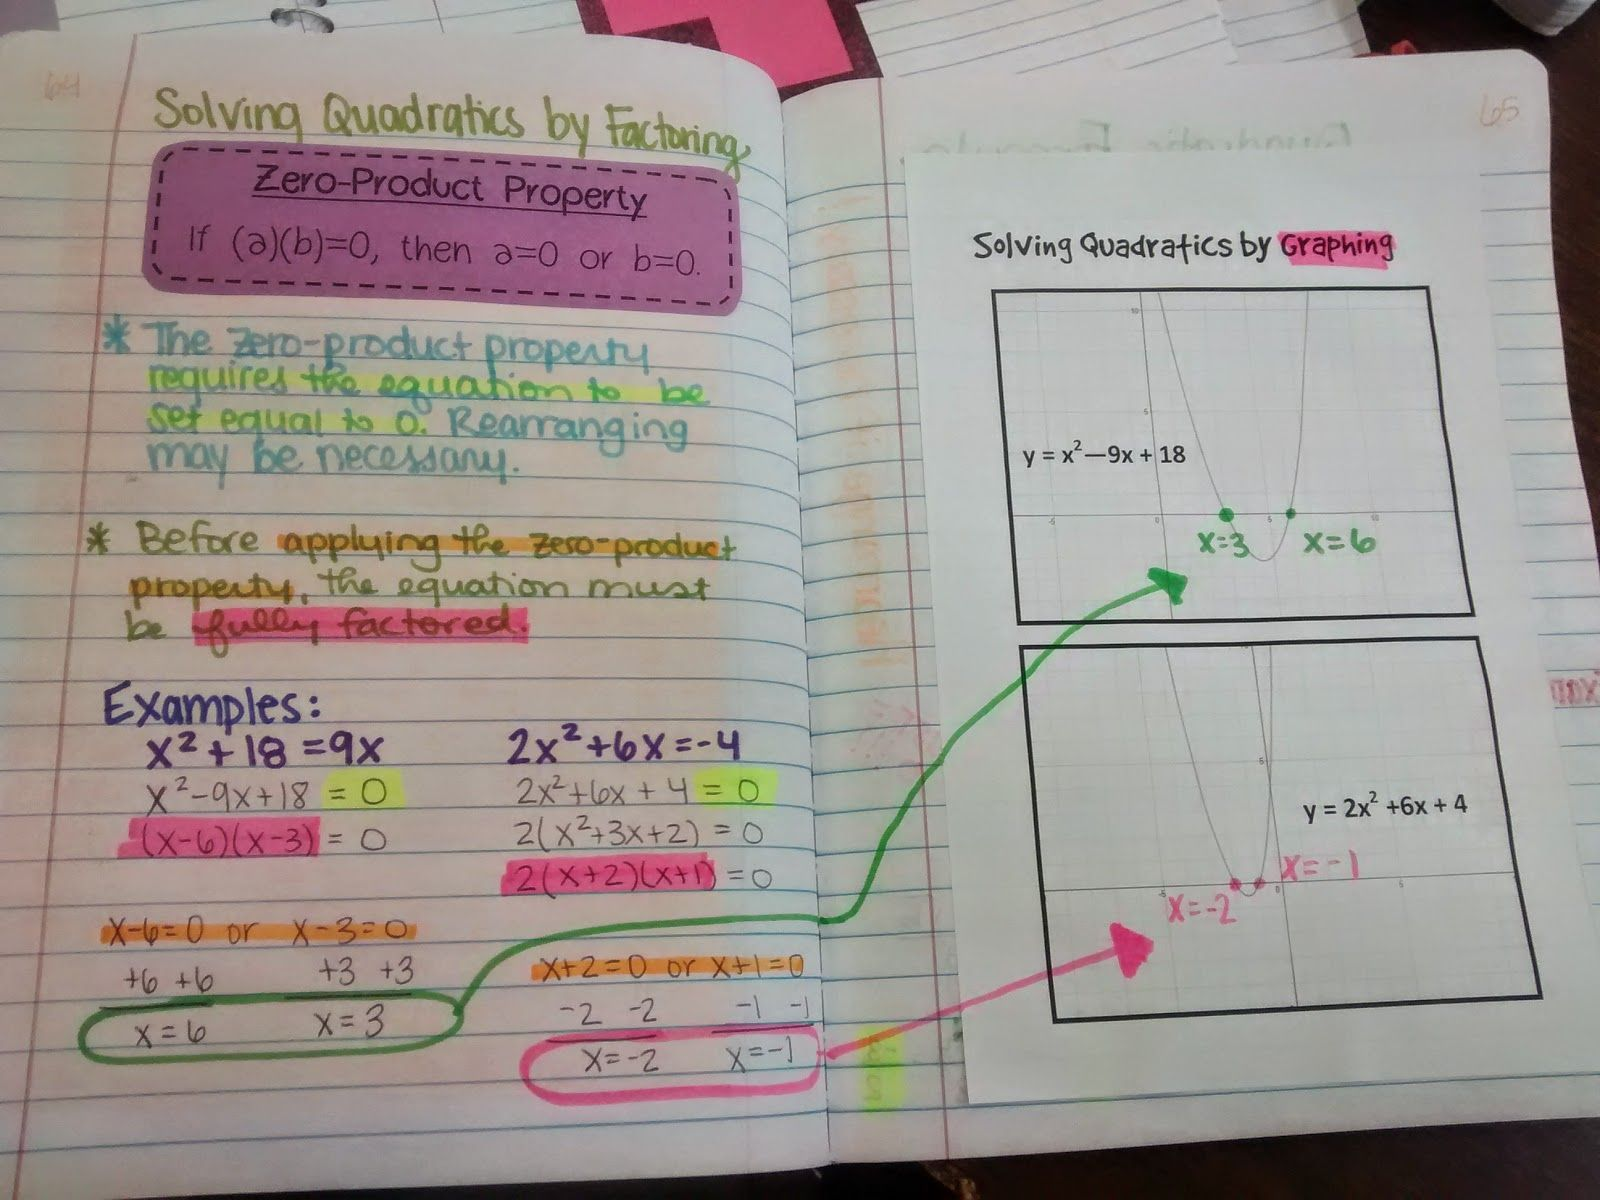 Algebra 2 Unit 3 Was All About Solving Quadratic Equations Originally I Had Planned To Make It